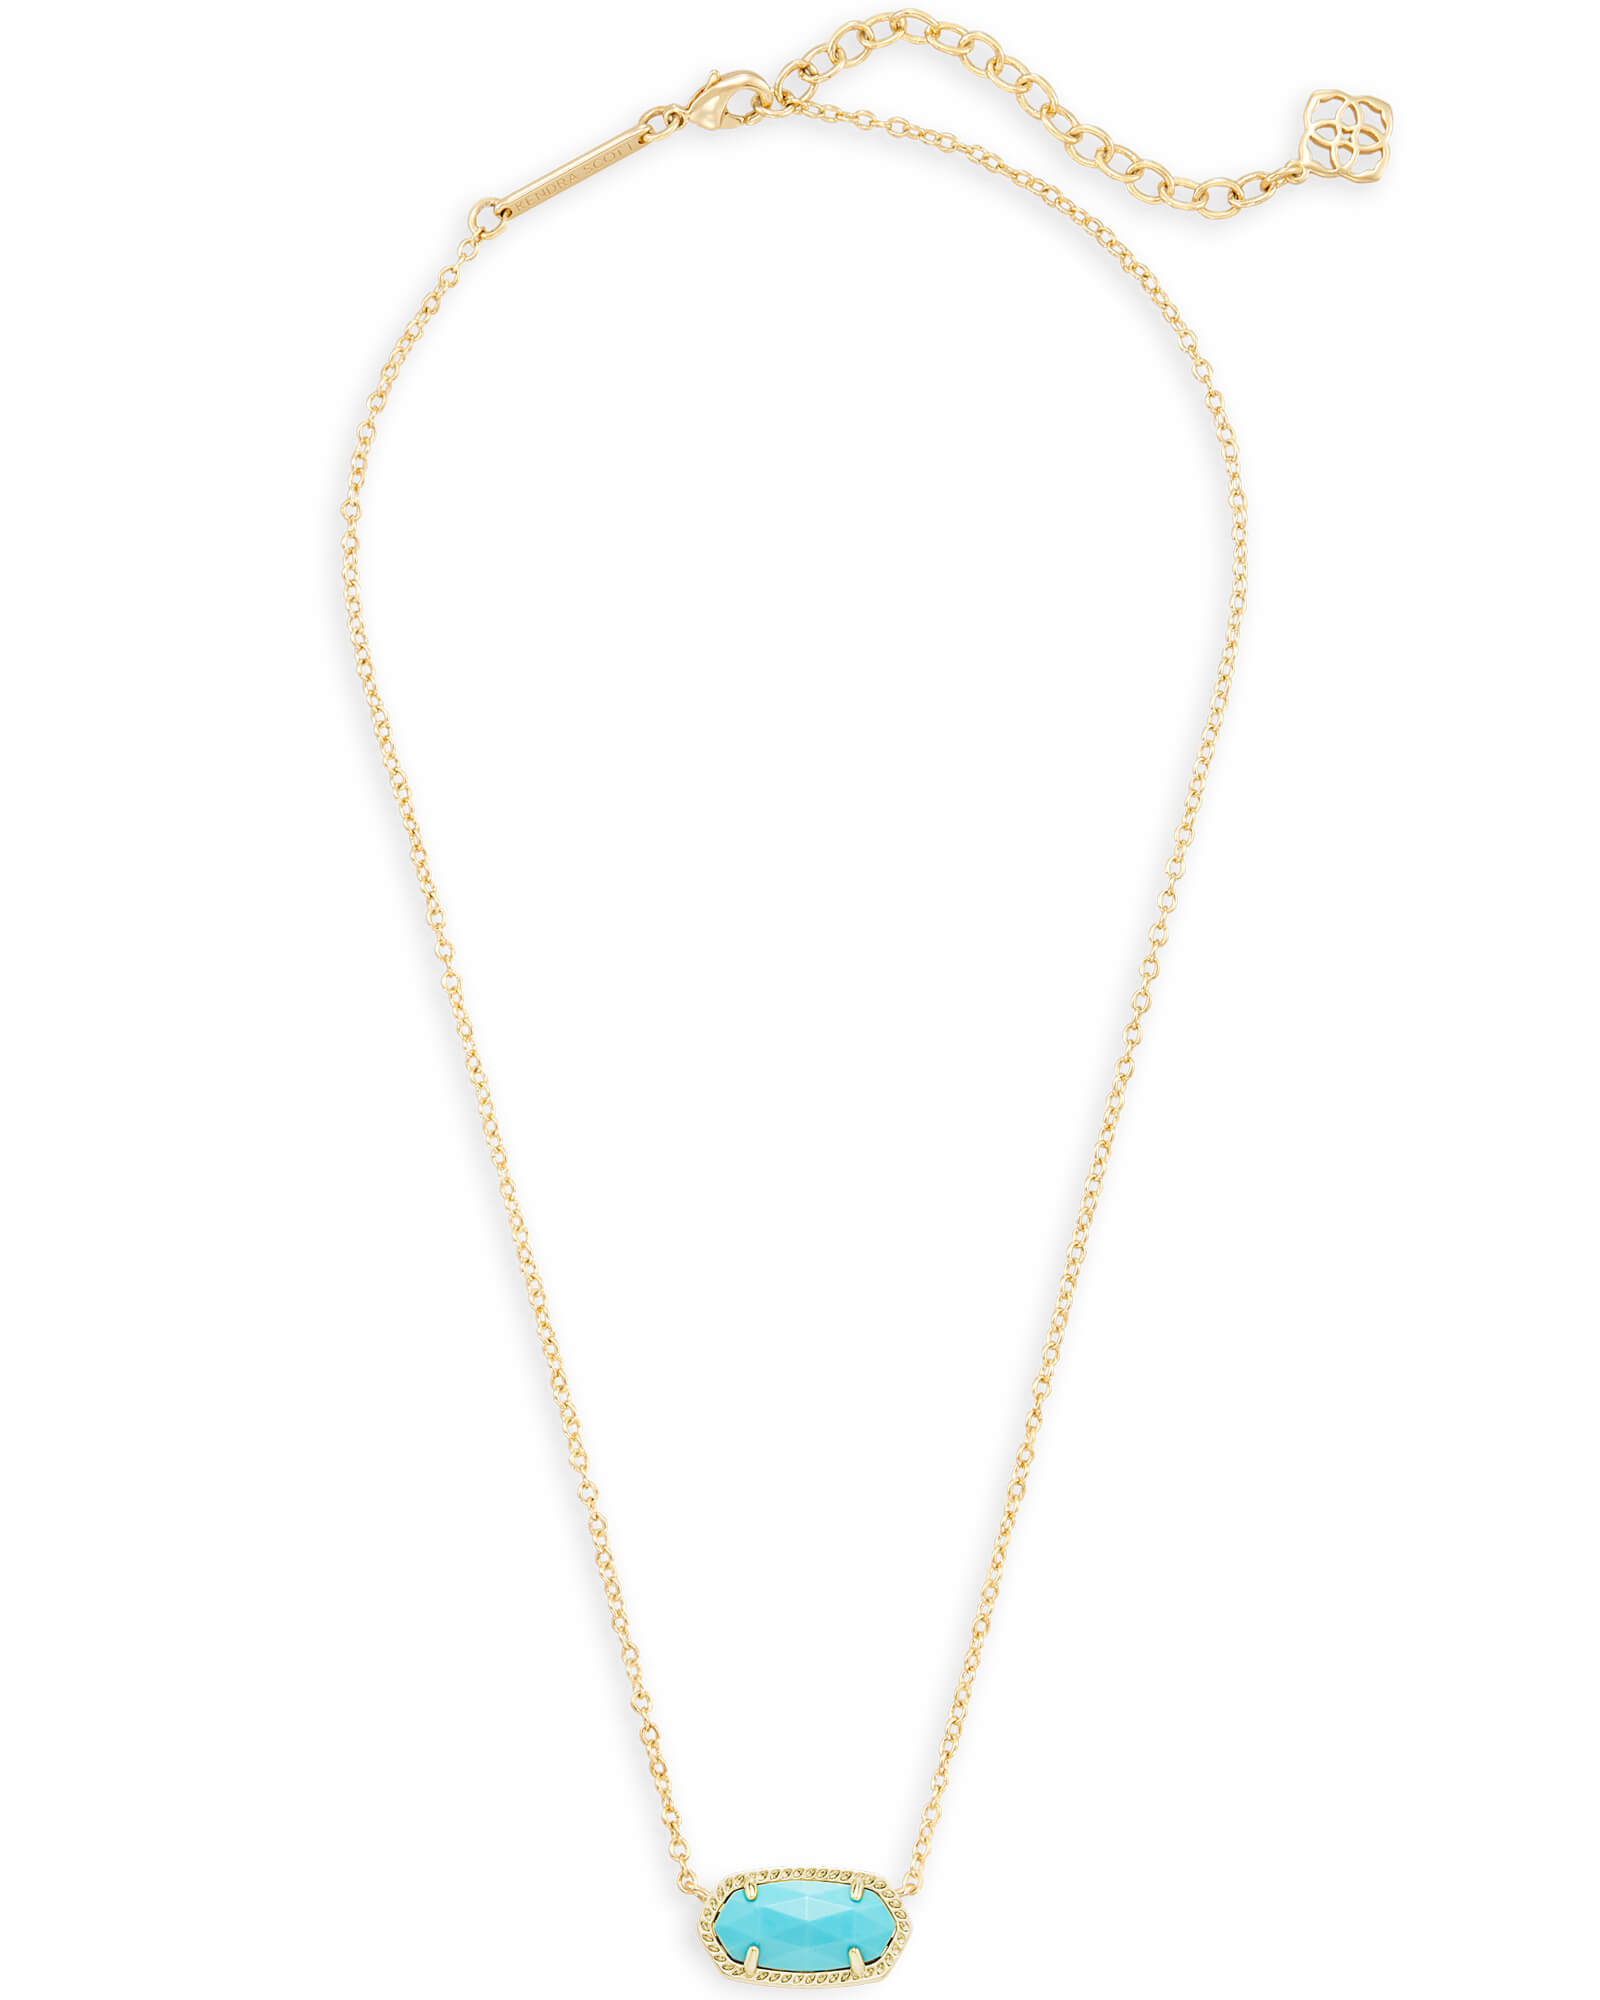 4094fcb95f6 Elisa Gold Pendant Necklace in Blue Turquoise | Kendra Scott